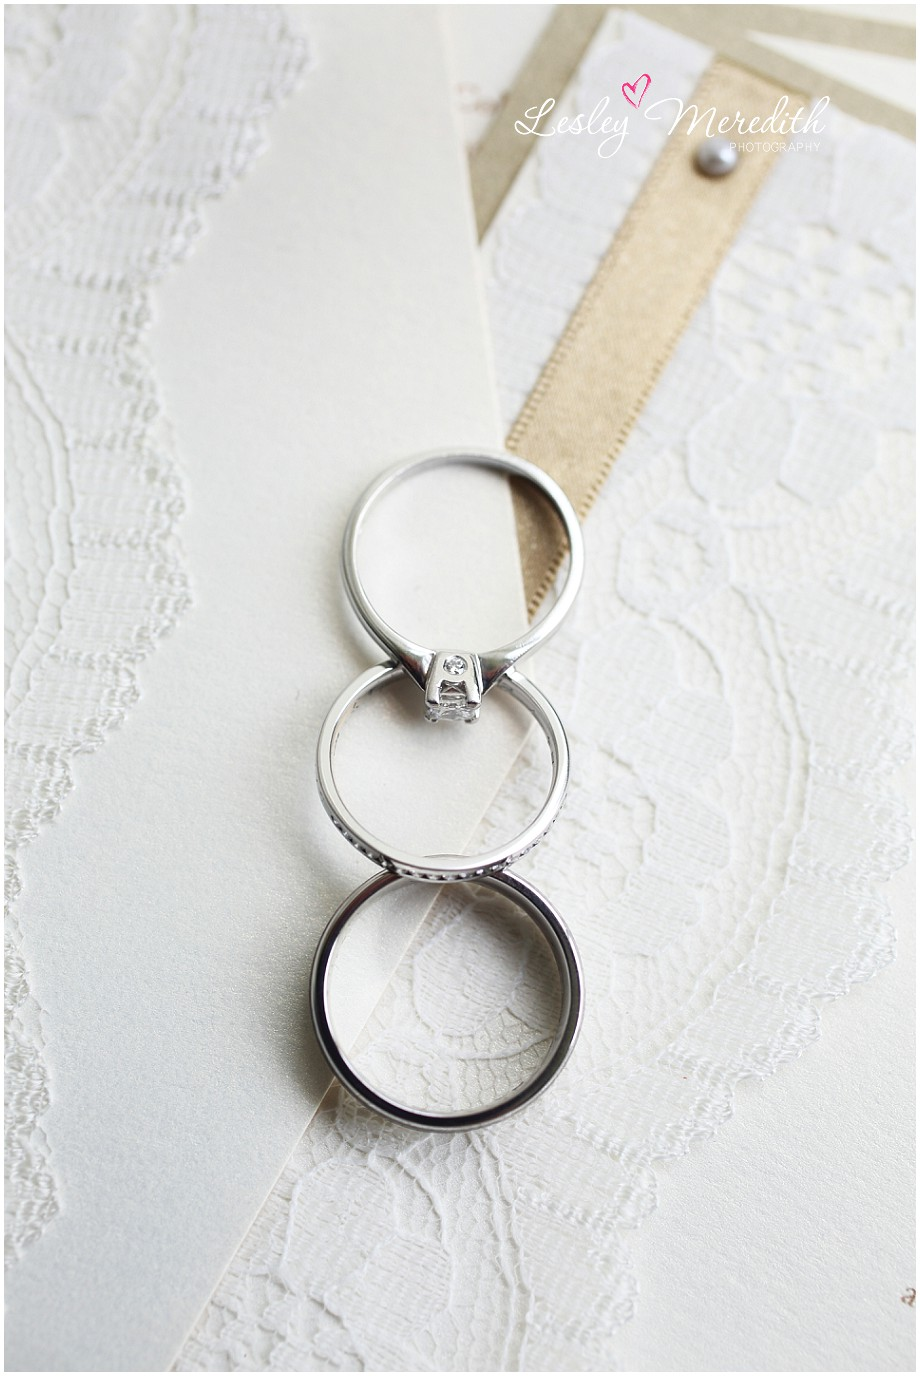 0 www.lesleymeredith.co (16)